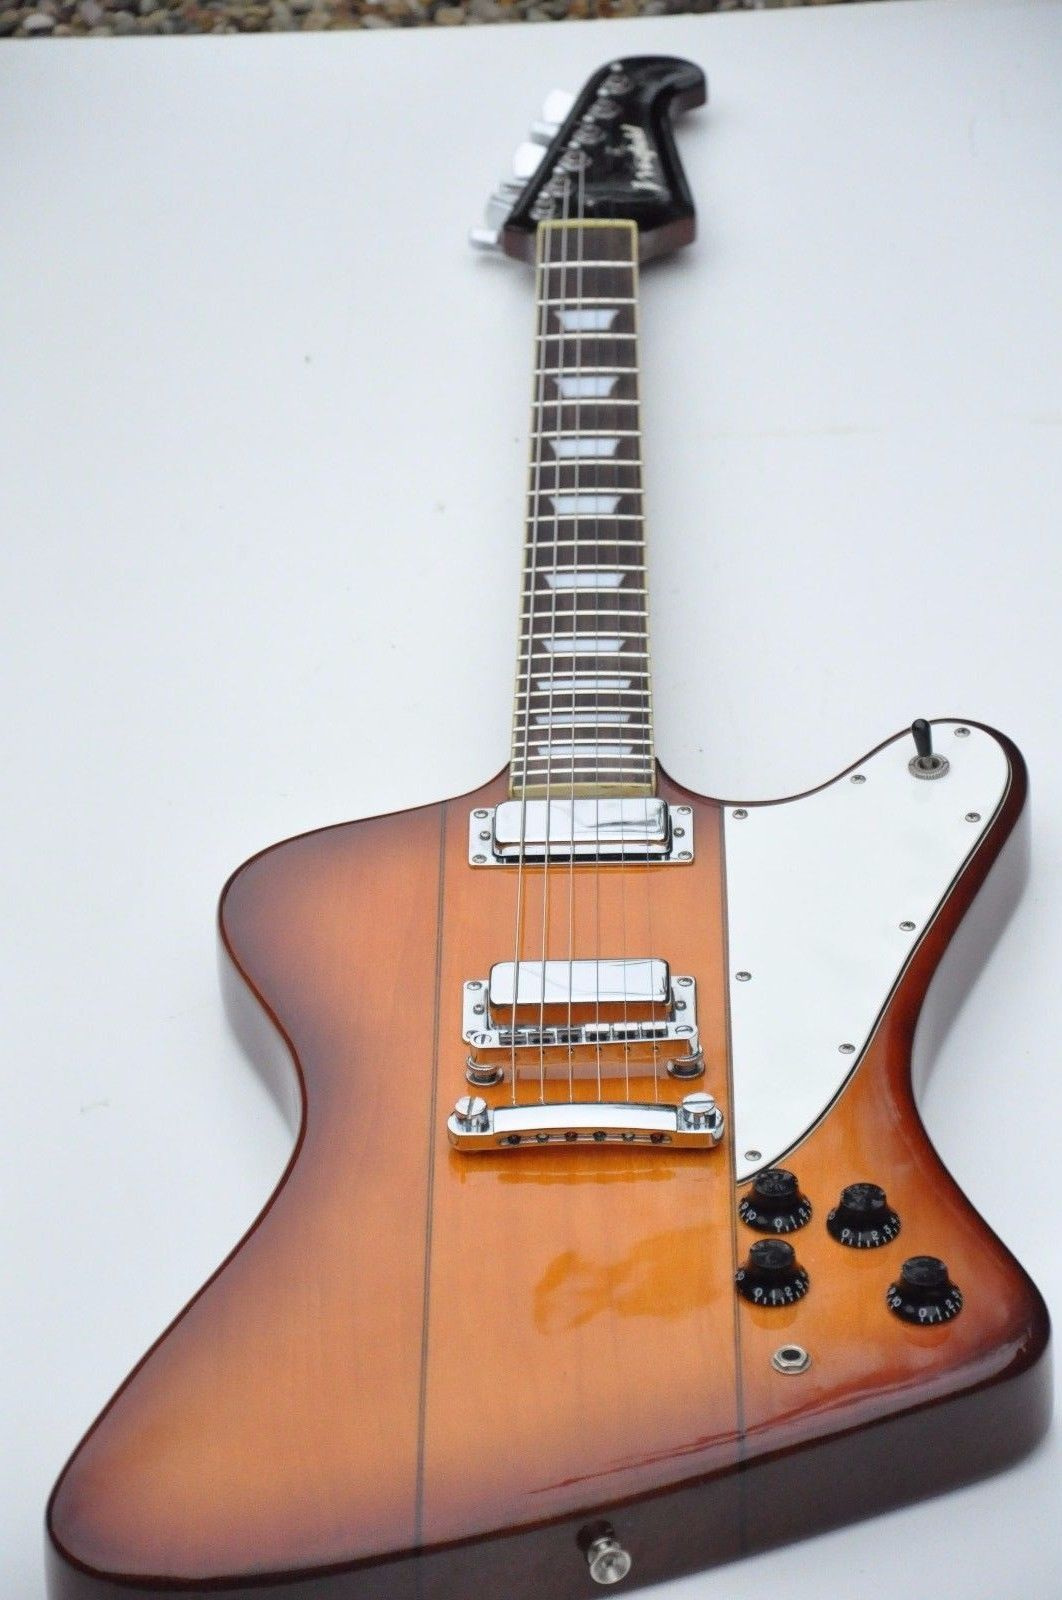 Westfield Firebird Electric Guitar - High Quality Gibson/Epiphone Firebird  Copy Firebird, Instrumentos Musicales